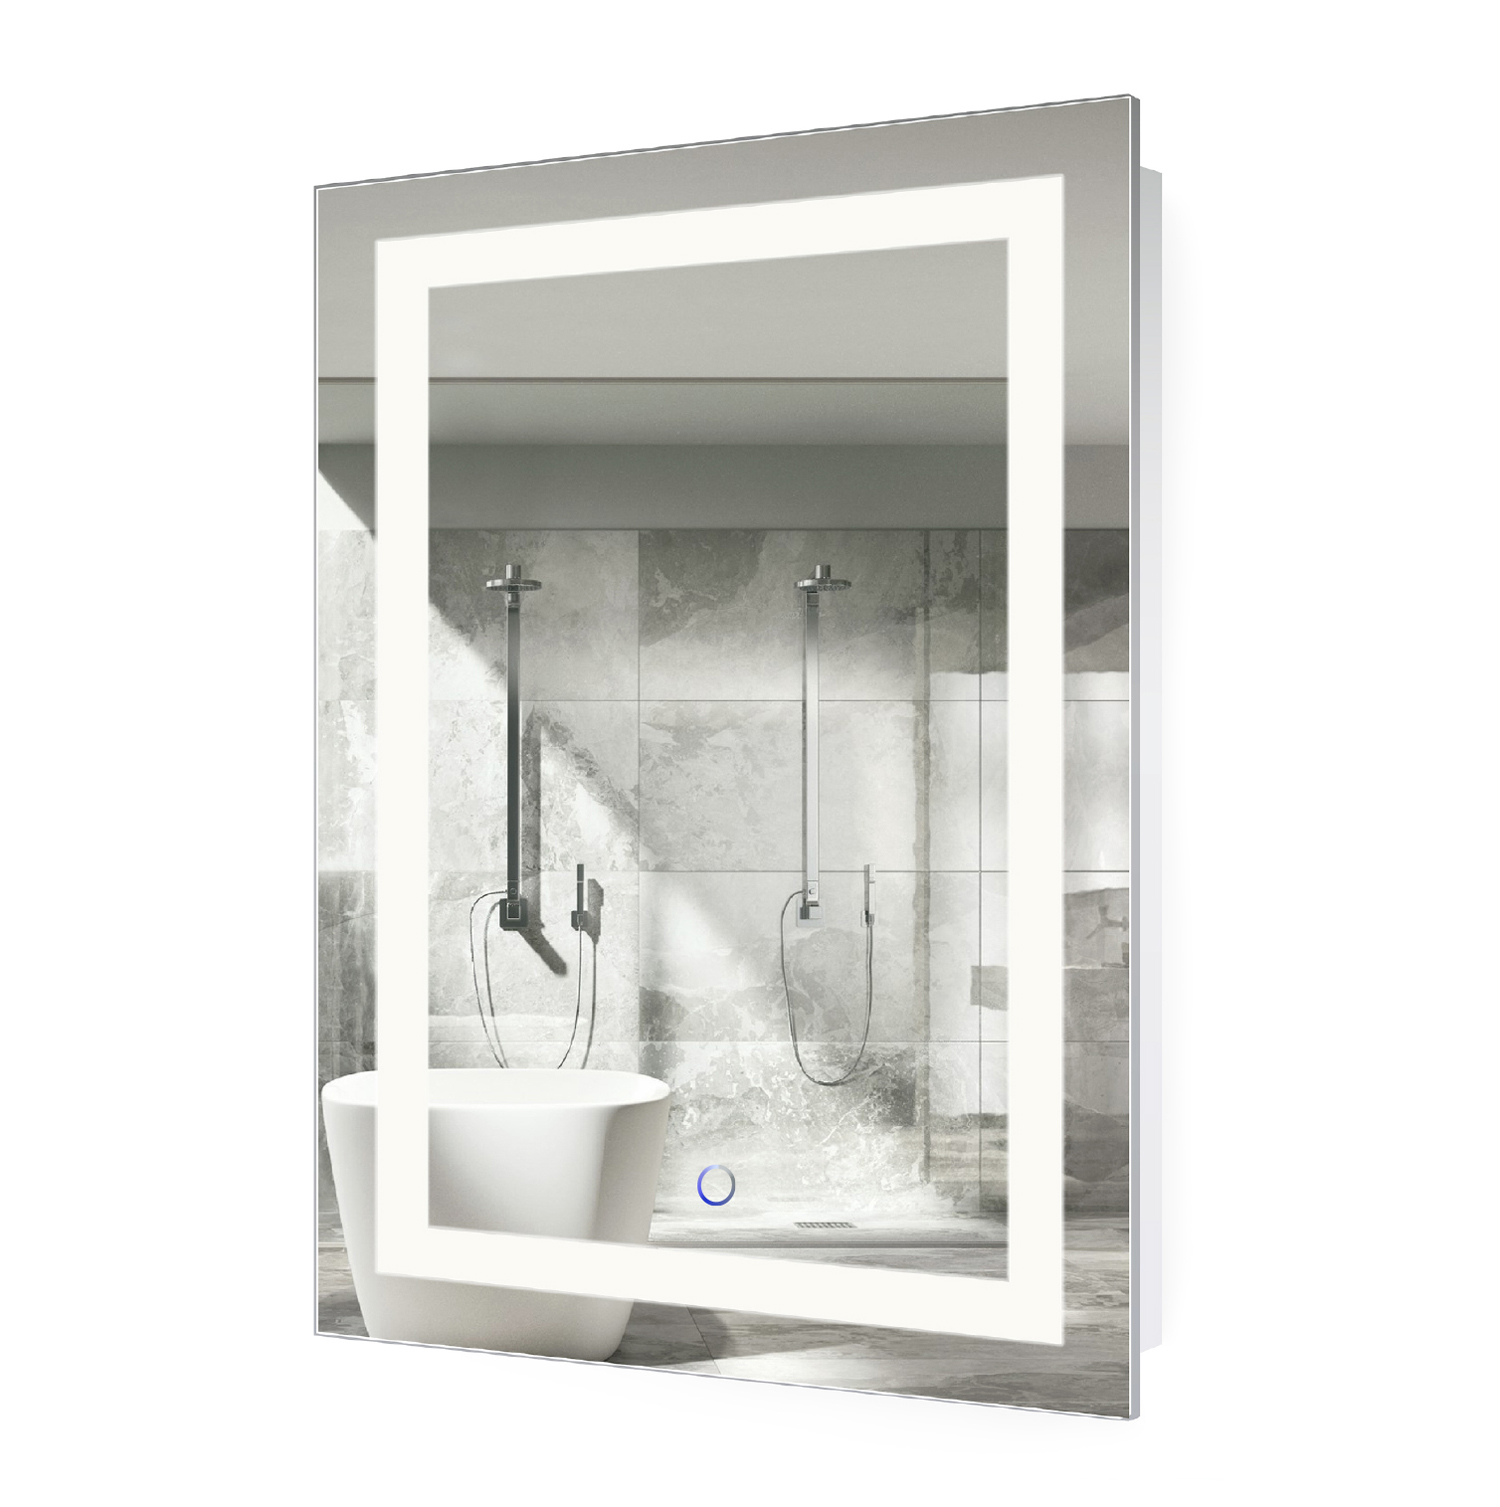 bathroom mirror backlit led lighted 24 x36 bathroom mirror with dimmer amp defogger 11003